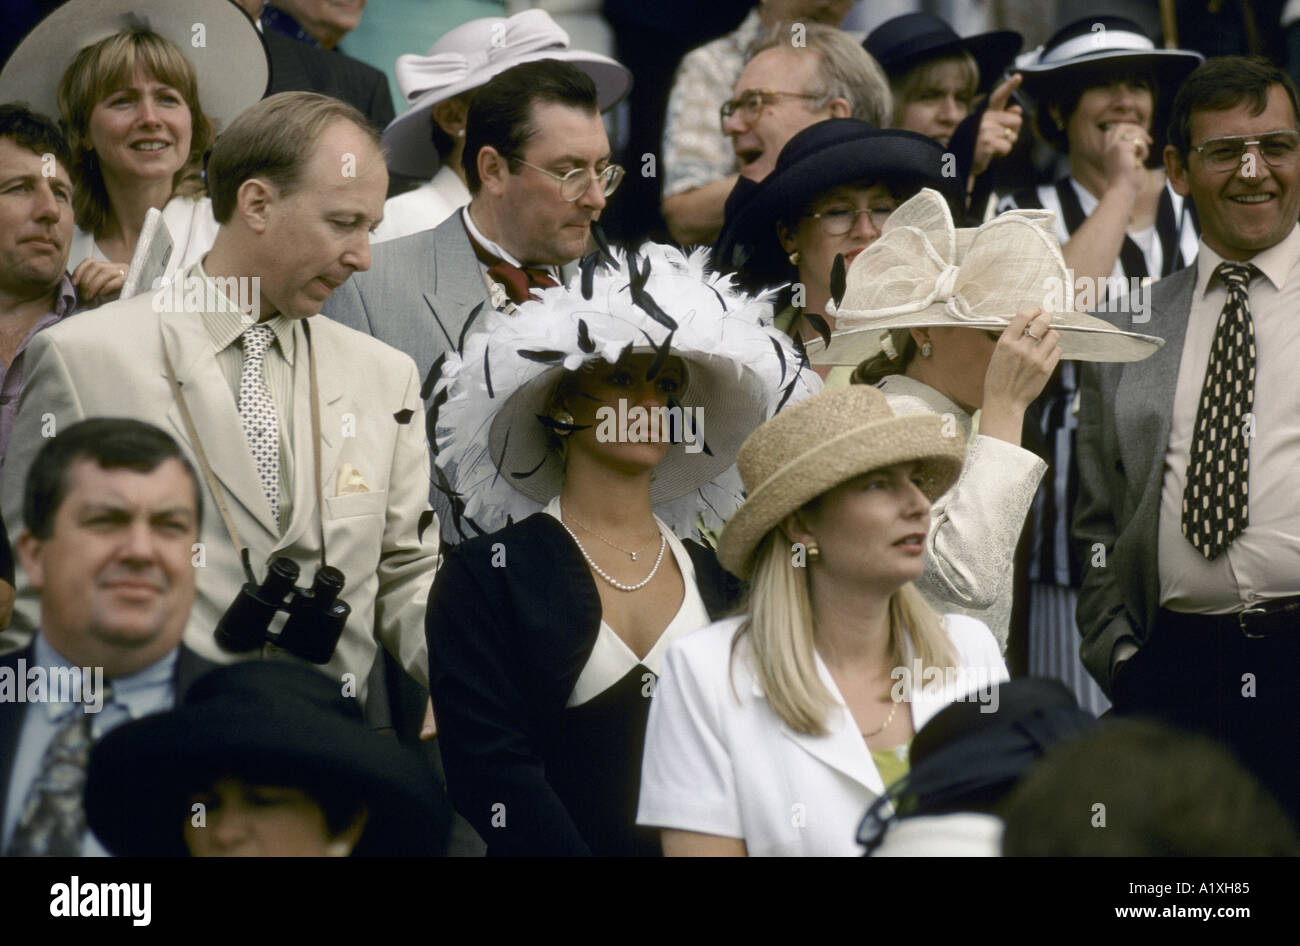 ROYAL ASCOT RACES LADIES DAY THE ENGLISH SOCIAL SEASON CROWD OF MEN AND  WOMEN WEARING HATS 193470220d9